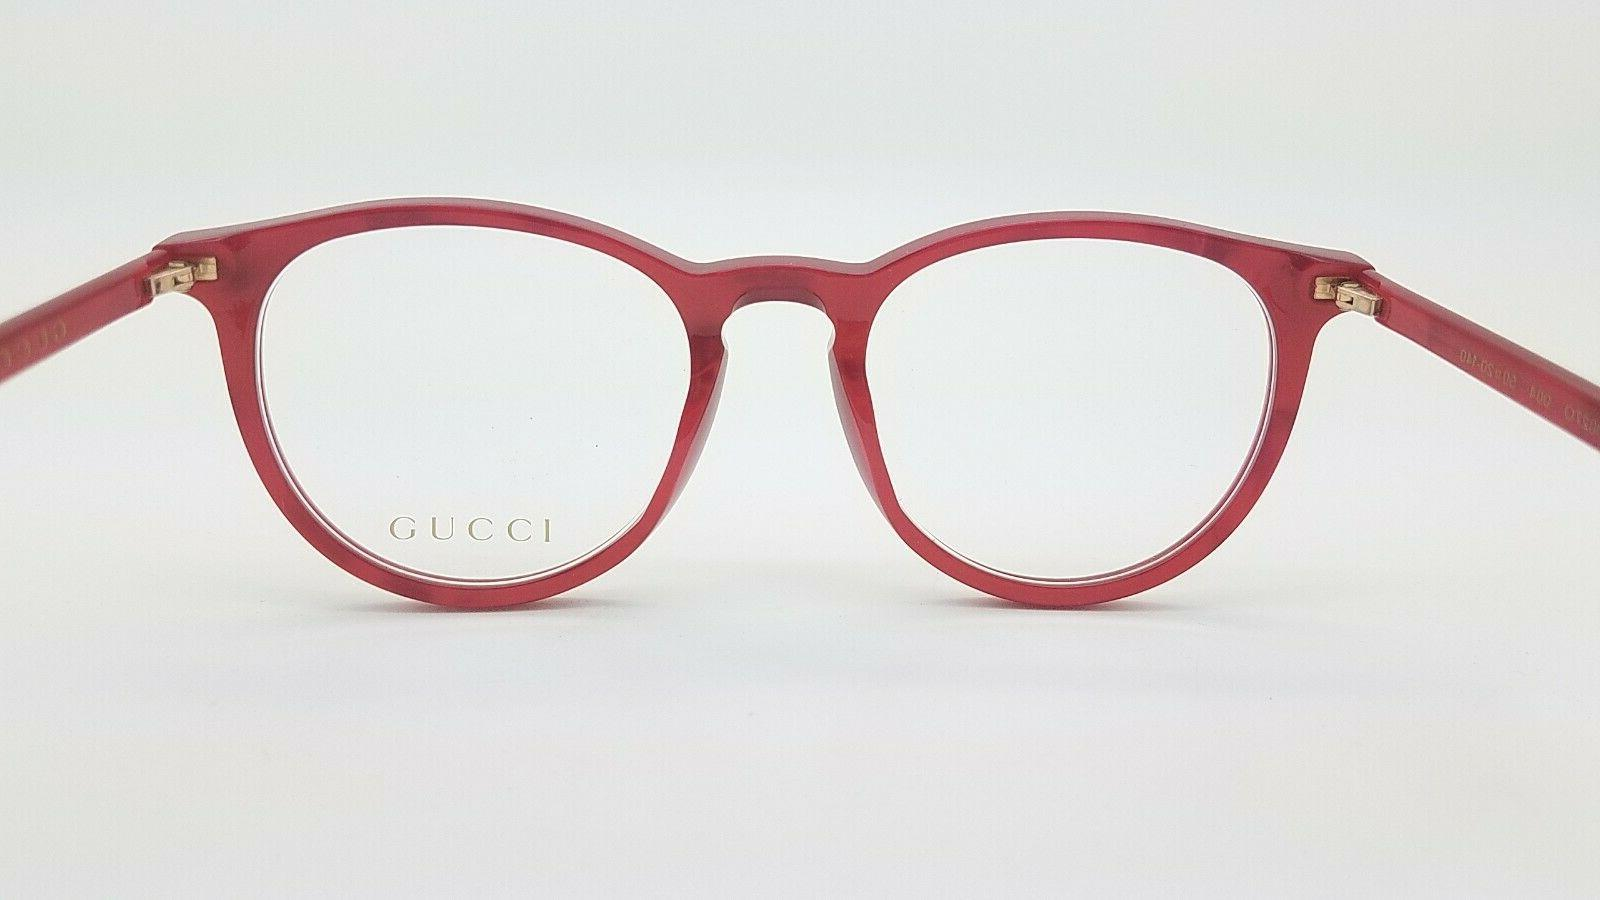 NEW Gucci RX Frame Glasses Red 004 50mm AUTHENTIC 0027O